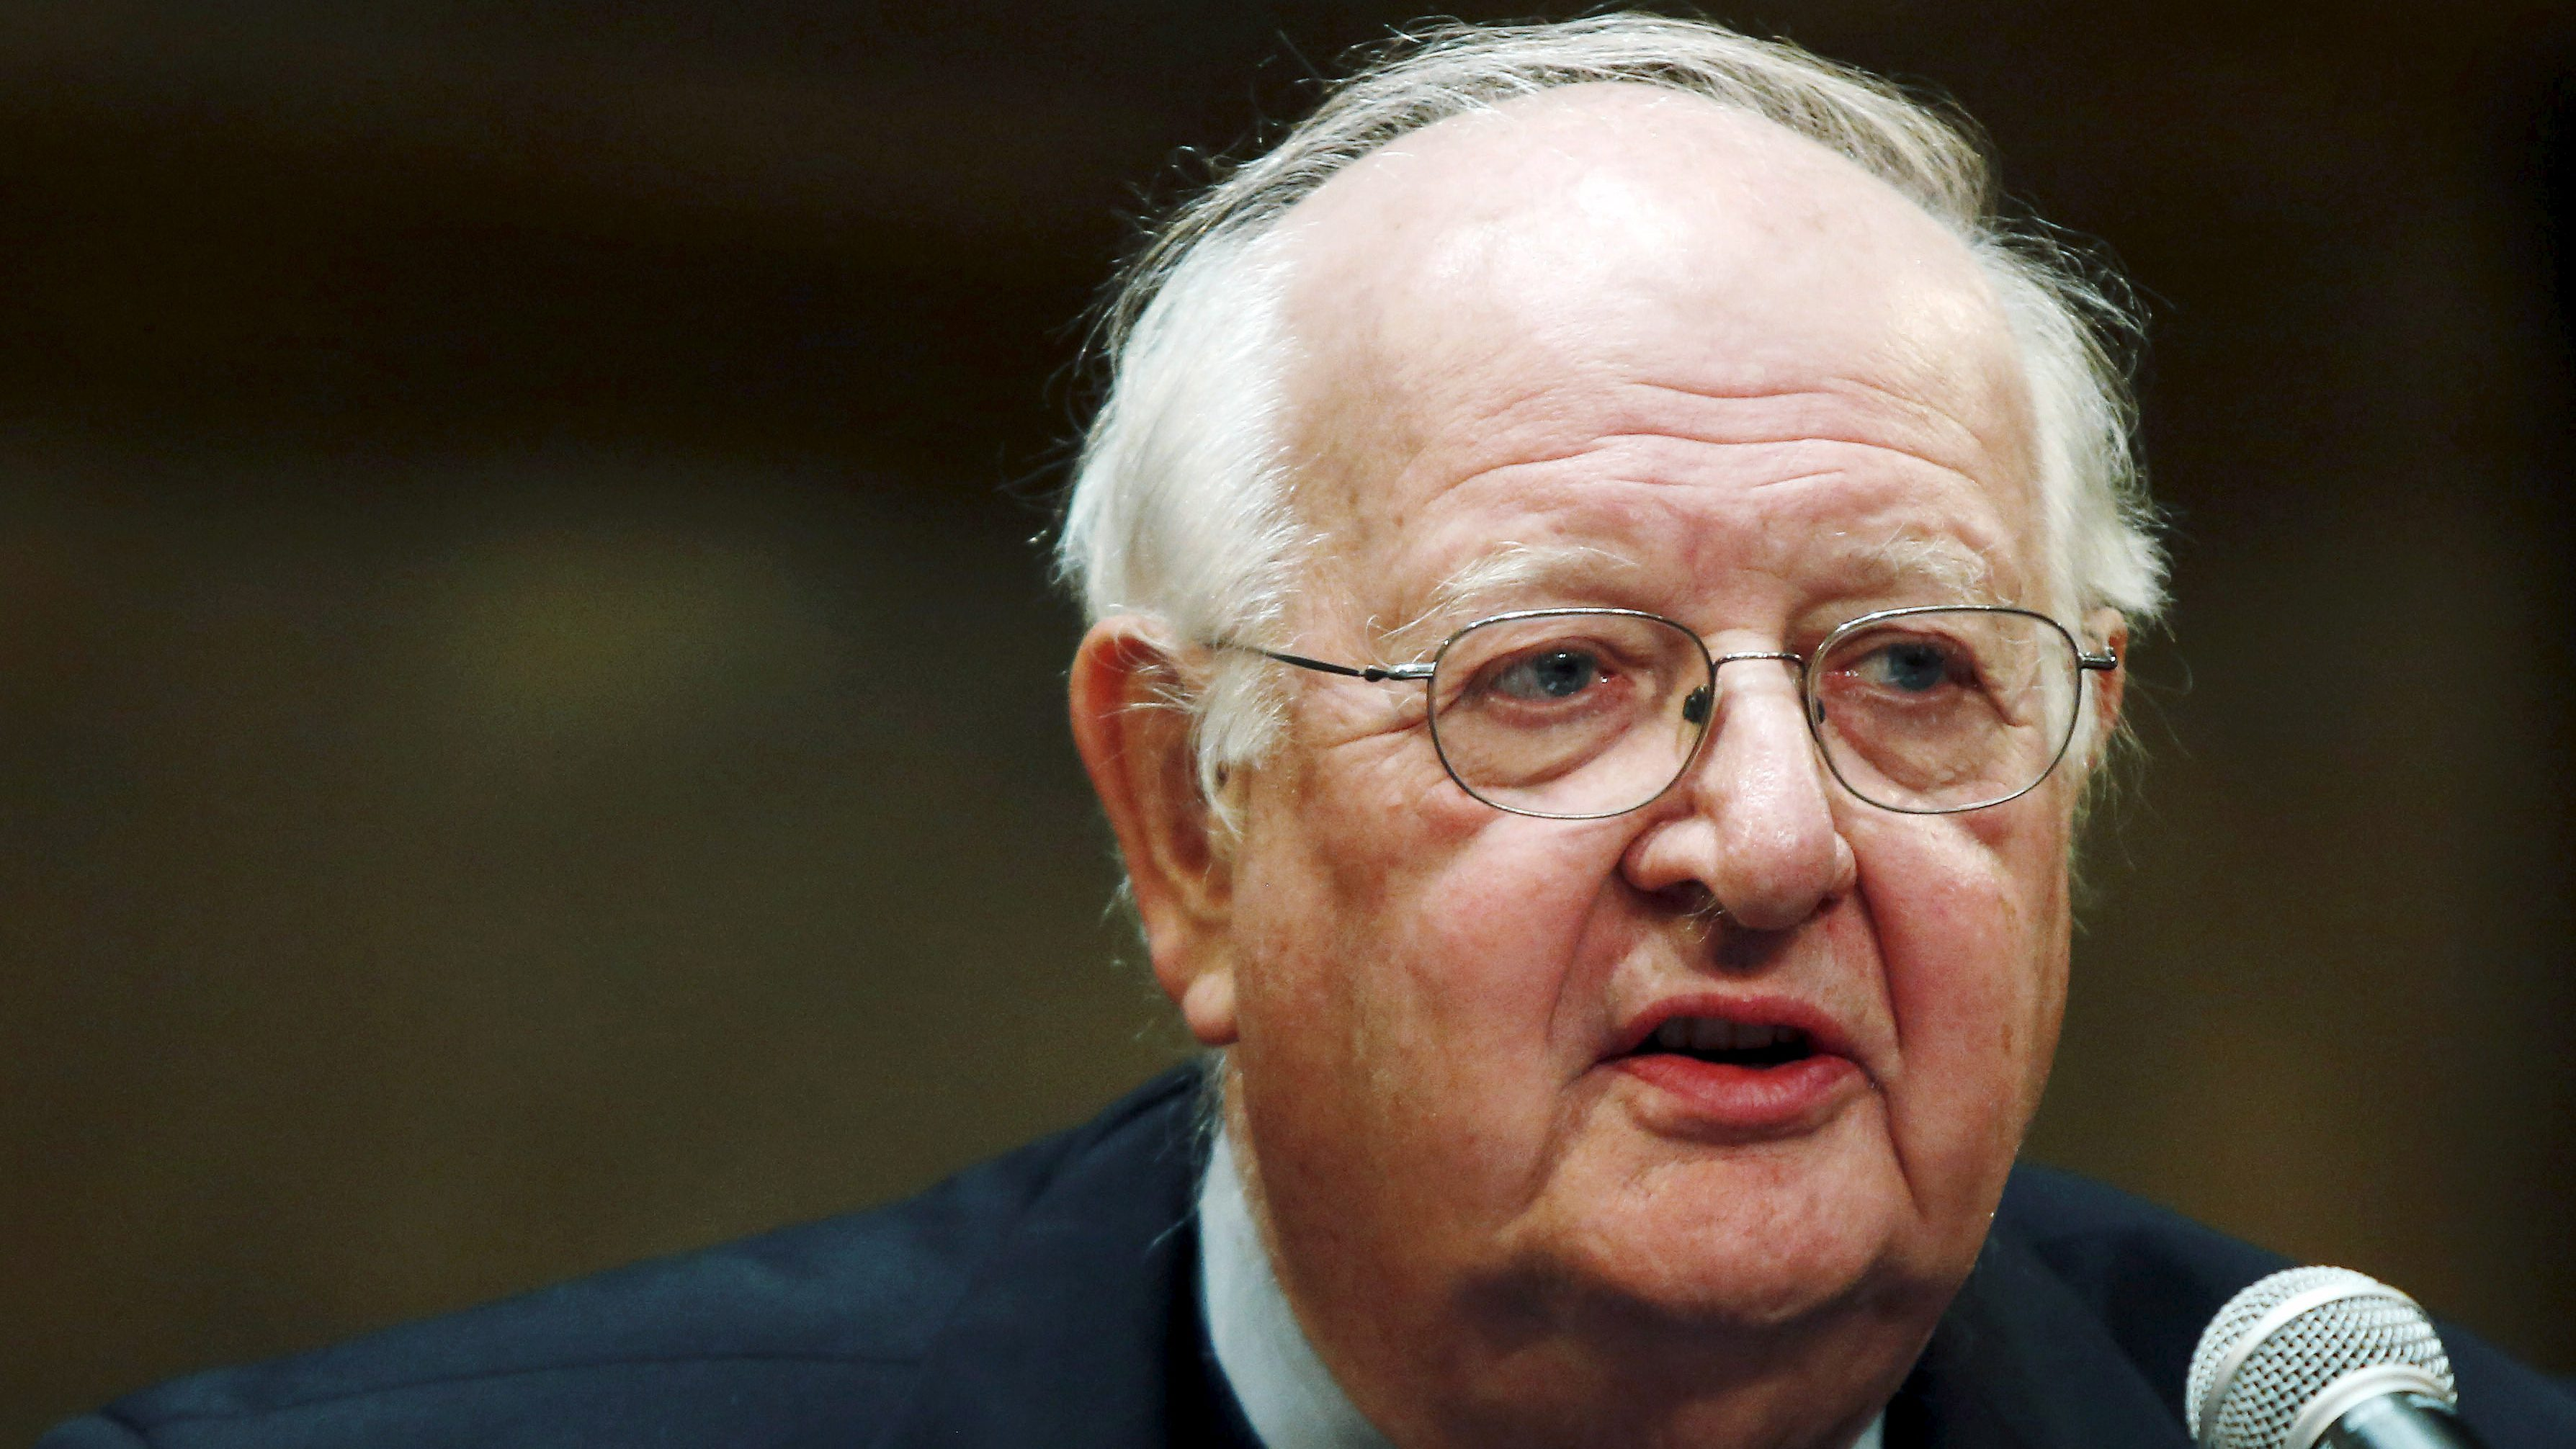 British-born economist Angus Deaton of Princeton University speaks in a news conference after winning the 2015 economics Nobel Prize on the Princeton University campus in Princeton